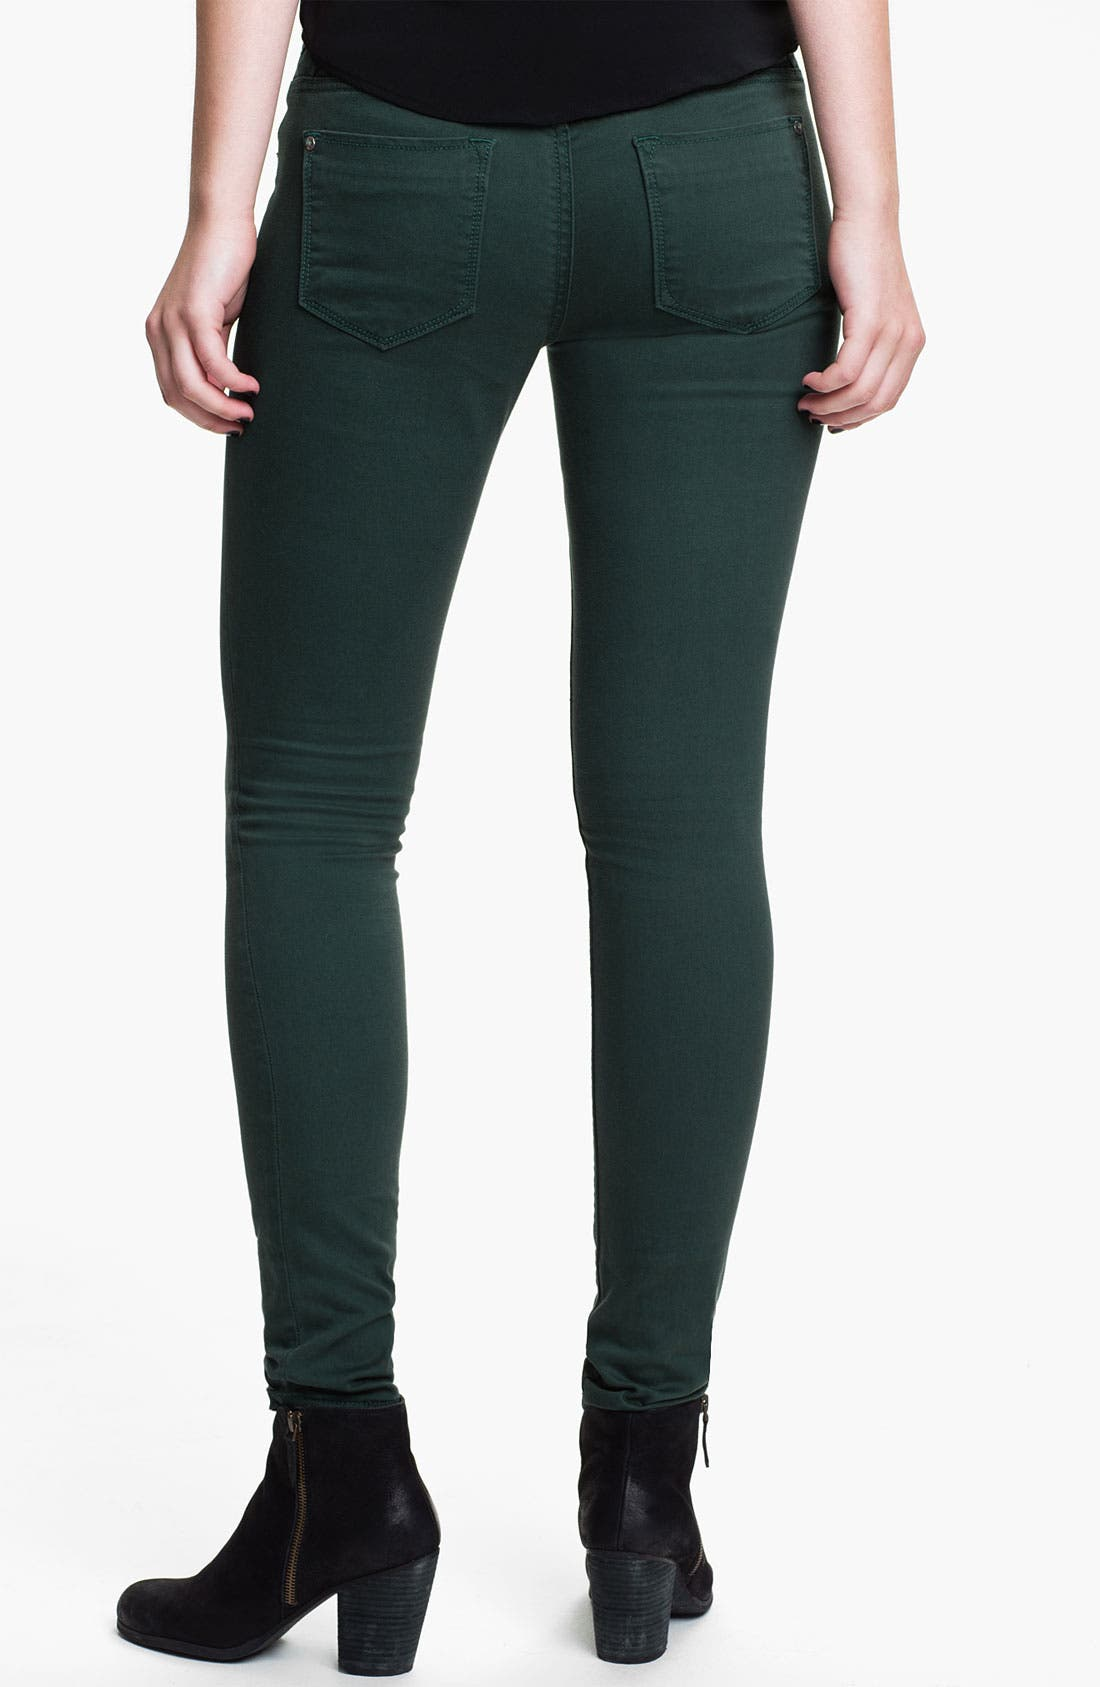 Alternate Image 1 Selected - Vigoss Color Skinny Jeans (Juniors) (Online Exclusive)